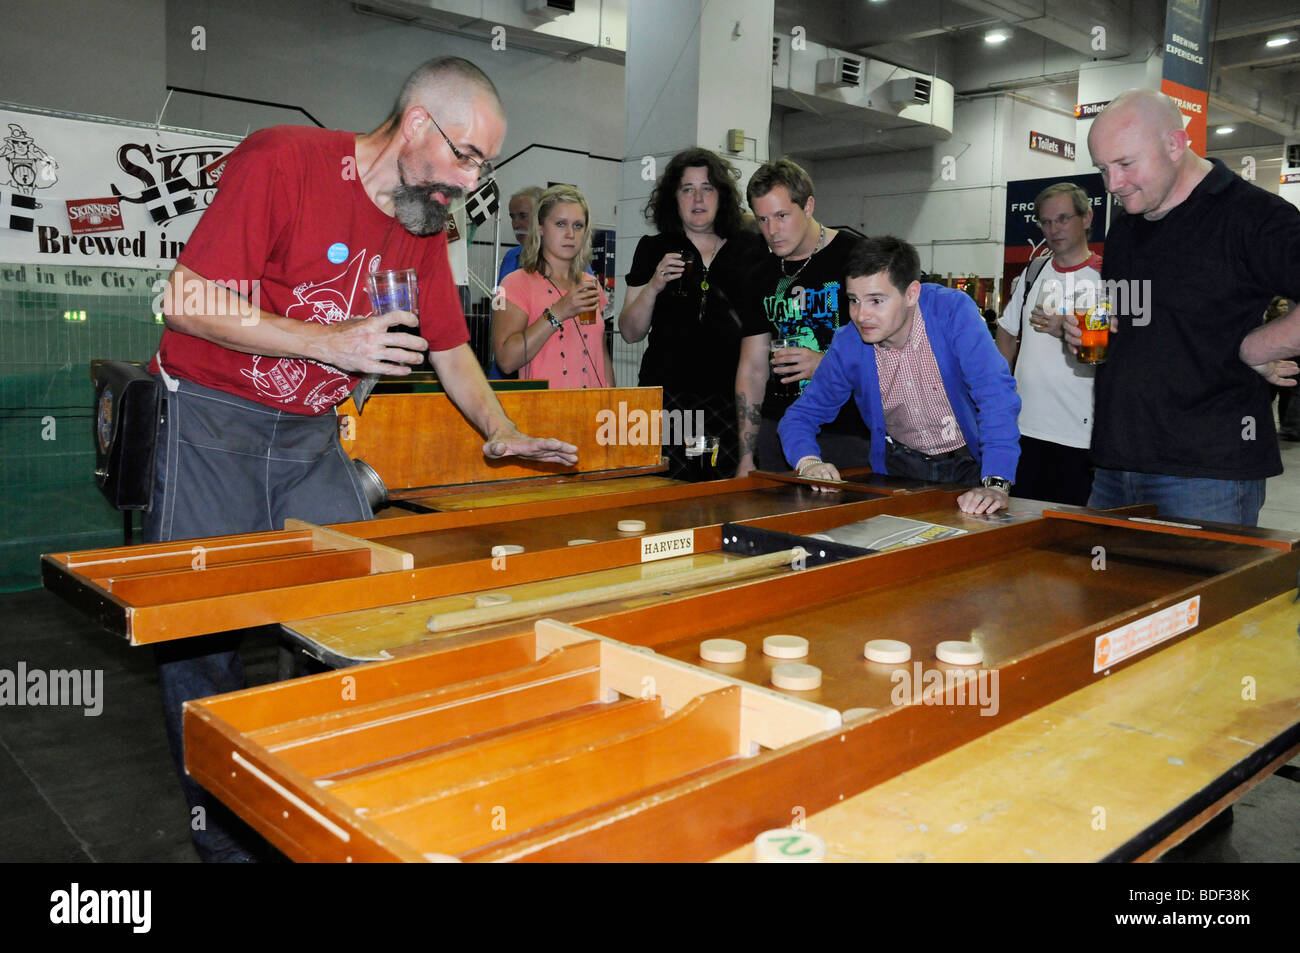 traditional bar games being played at the great british beer